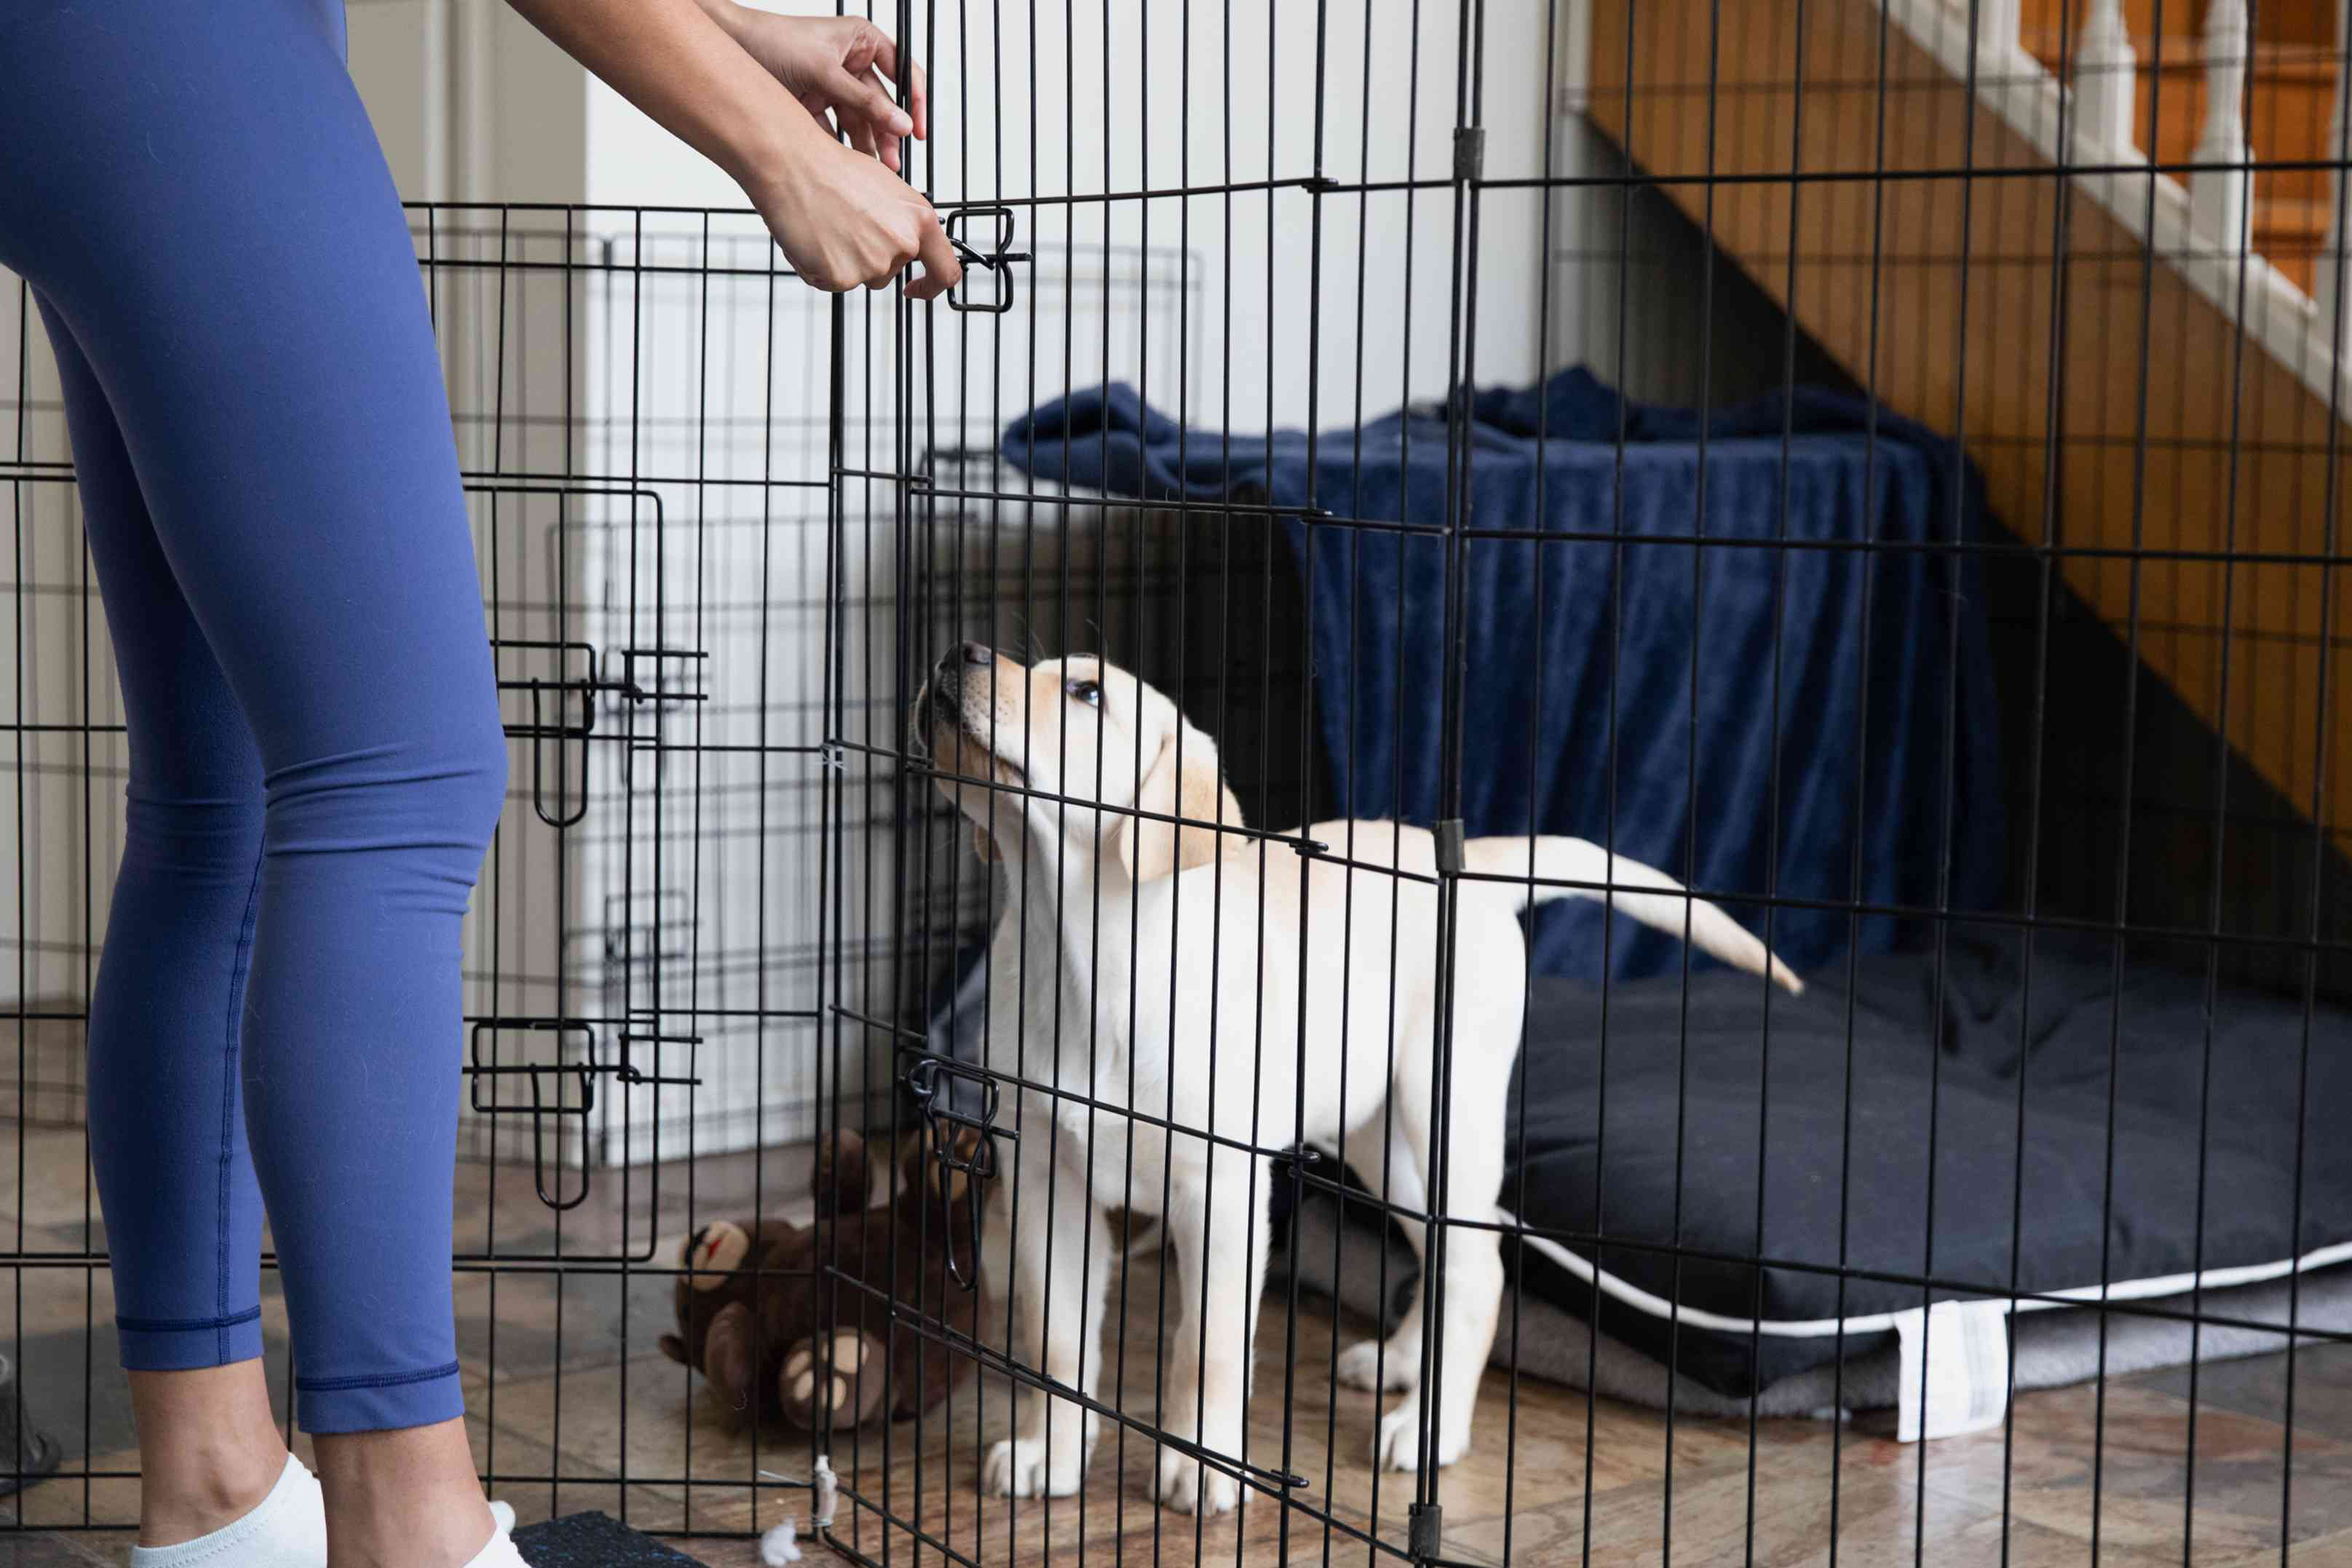 White labrador puppy standing behind opening in indoor wire fence